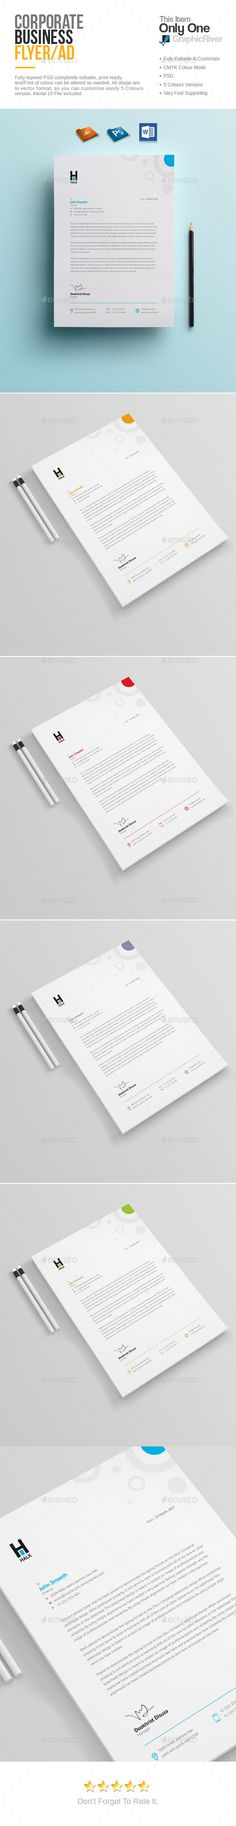 Free Printable Business Letterhead Templates Corporate Letterhead Design  Letterhead Design Template And .